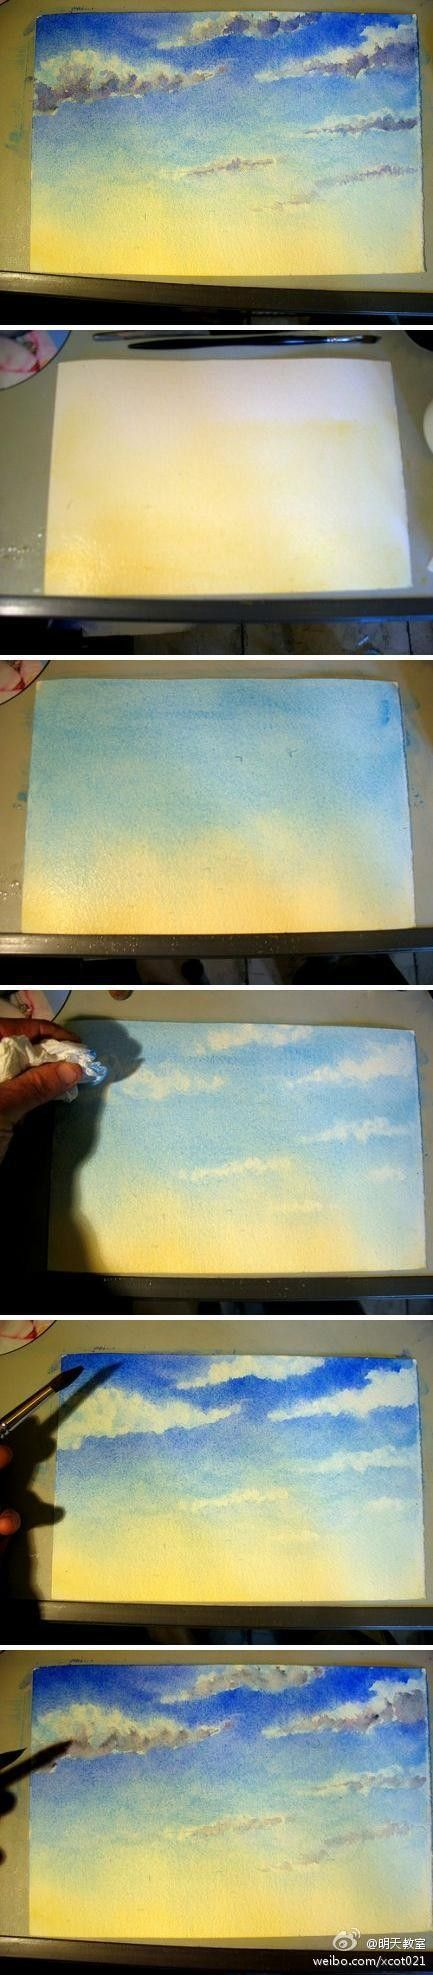 Sharing a detailed watercolor sky.